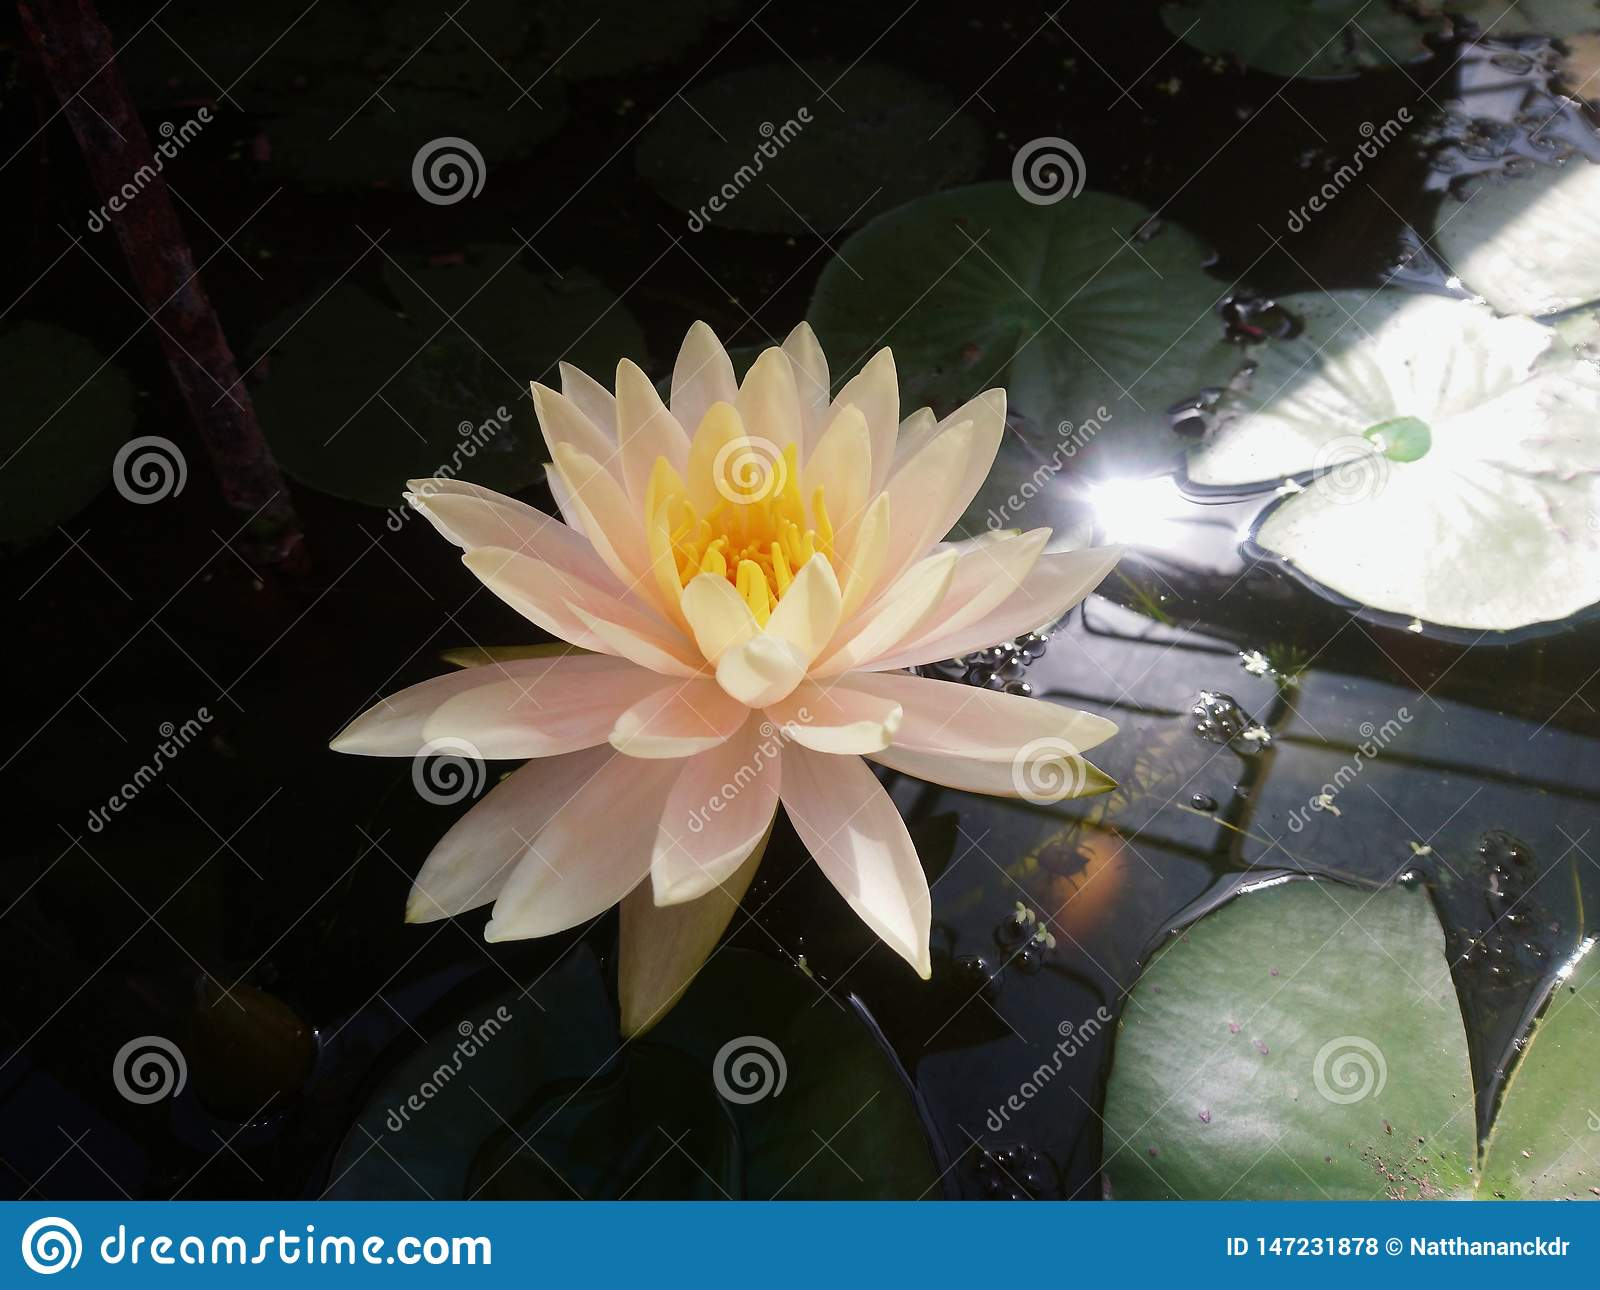 The white lotus in the pond with warm light